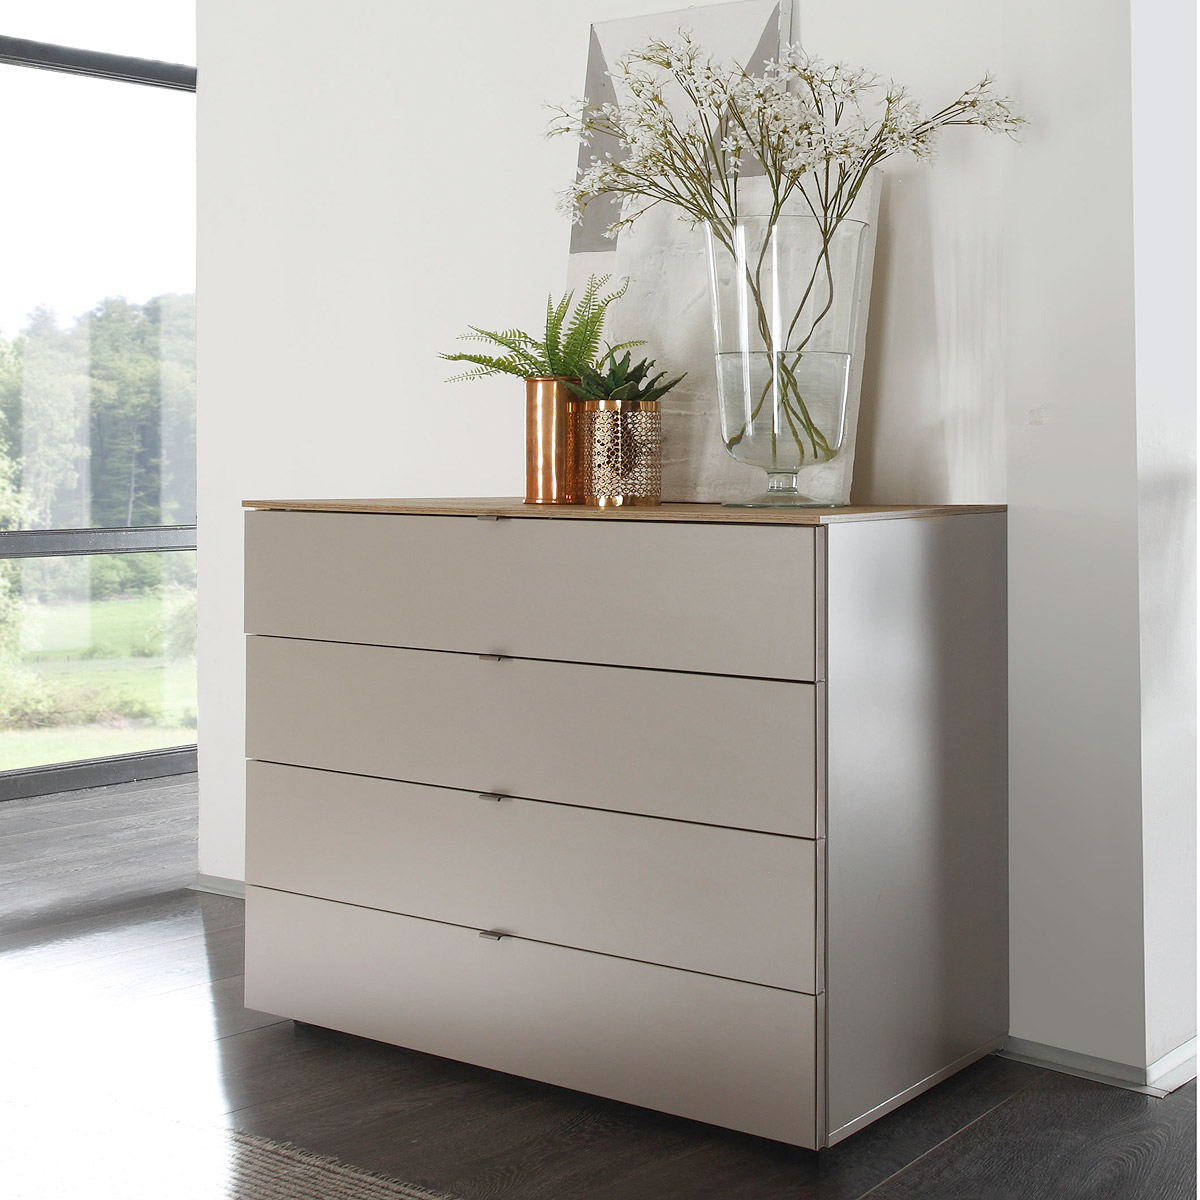 kommode tambura sideboard beige matt und eiche natur mit. Black Bedroom Furniture Sets. Home Design Ideas